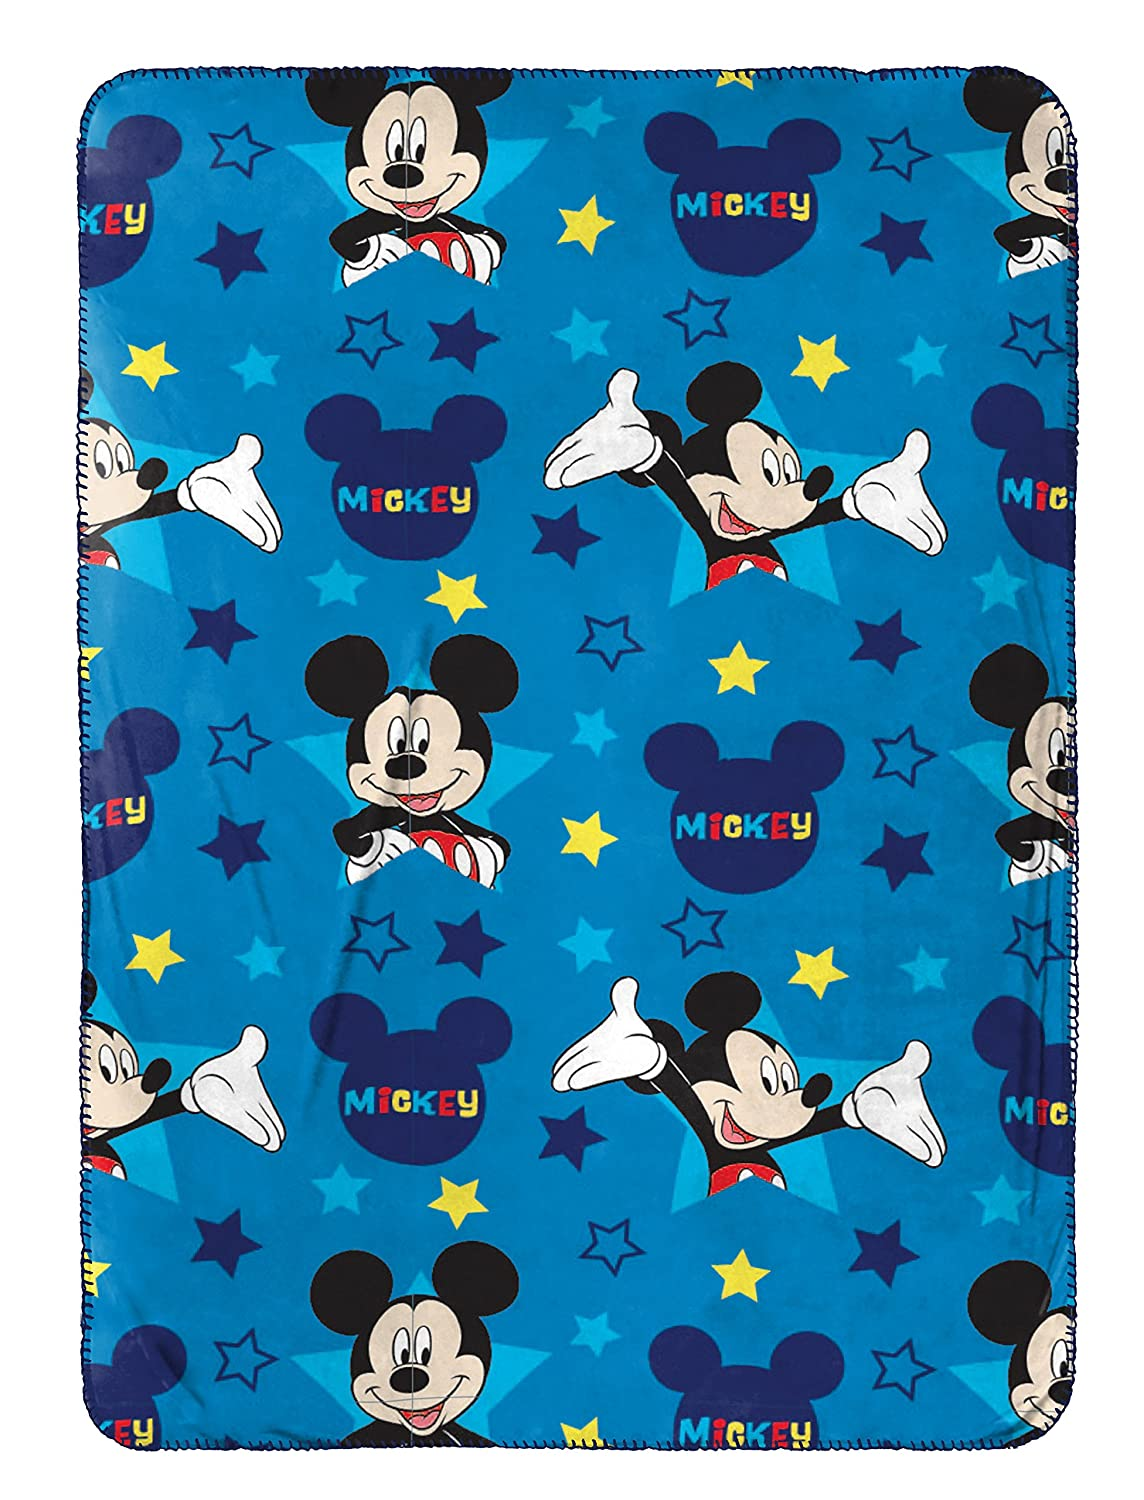 Disney Mickey Mouse Plush Travel Blanket, Blue Throw Jay Franco and Sons Inc. JF16152ECD